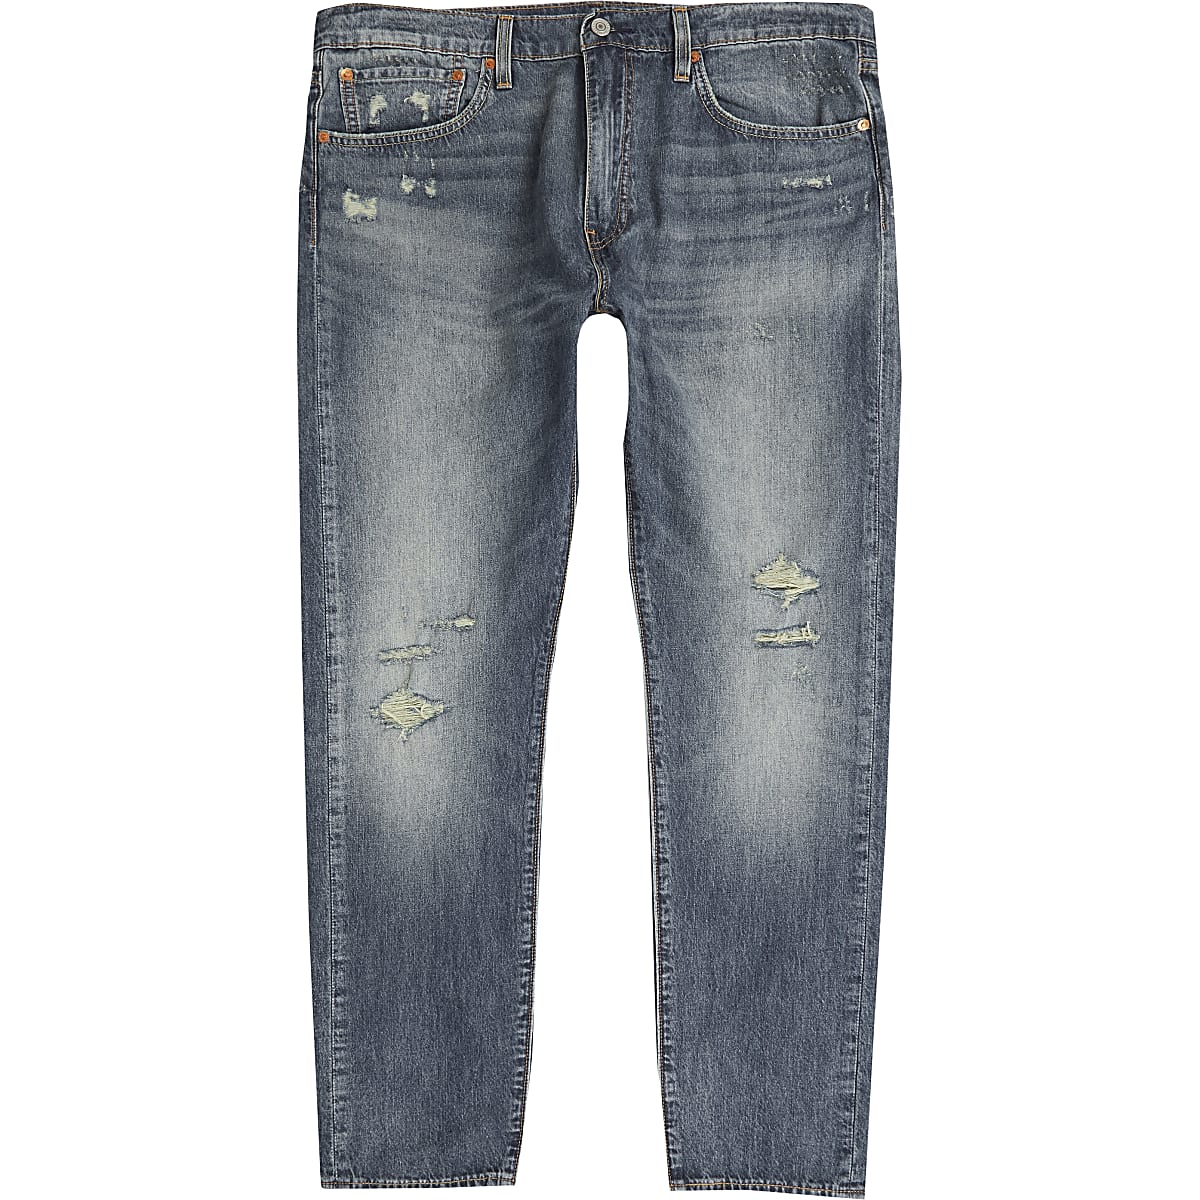 Levi's - Blauwe 512 smalle smaltoelopende ripped jeans